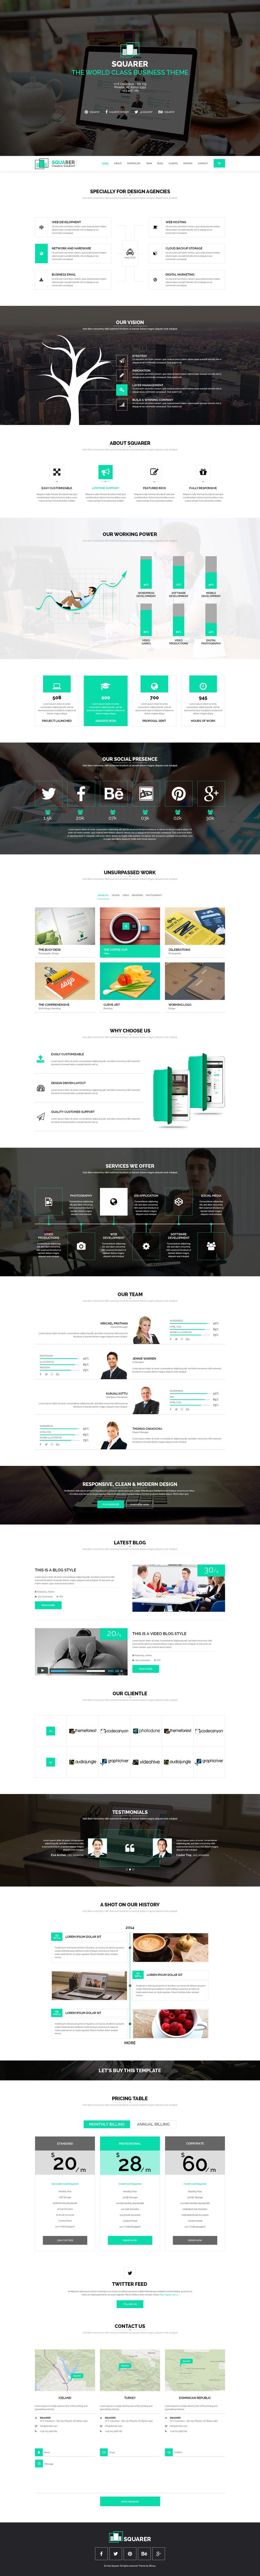 Squarer Responsive HTML5 Template is a complete portfolio for creative agencies, freelancers, Graphic designers, illustrators, photographers or any kind of creative workers are now able to create a quick & easy portfolio to showcase of their work with an elegant touch.